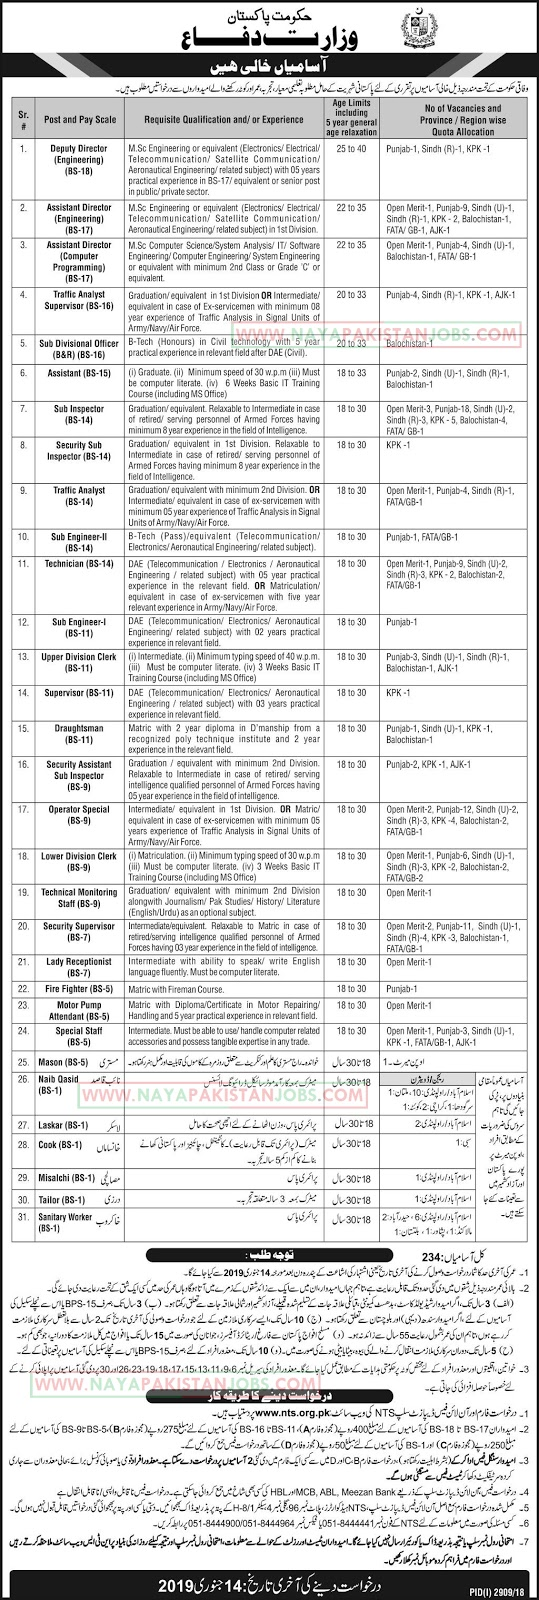 Ministry of Defense Jobs Nts Application form, NTS Ministry of Defense Jobs Latest Vacancies Announced in Ministry Of Defence Govt Of Pakistan via NTS 30 December 2018 - Naya Pakistan Jobs